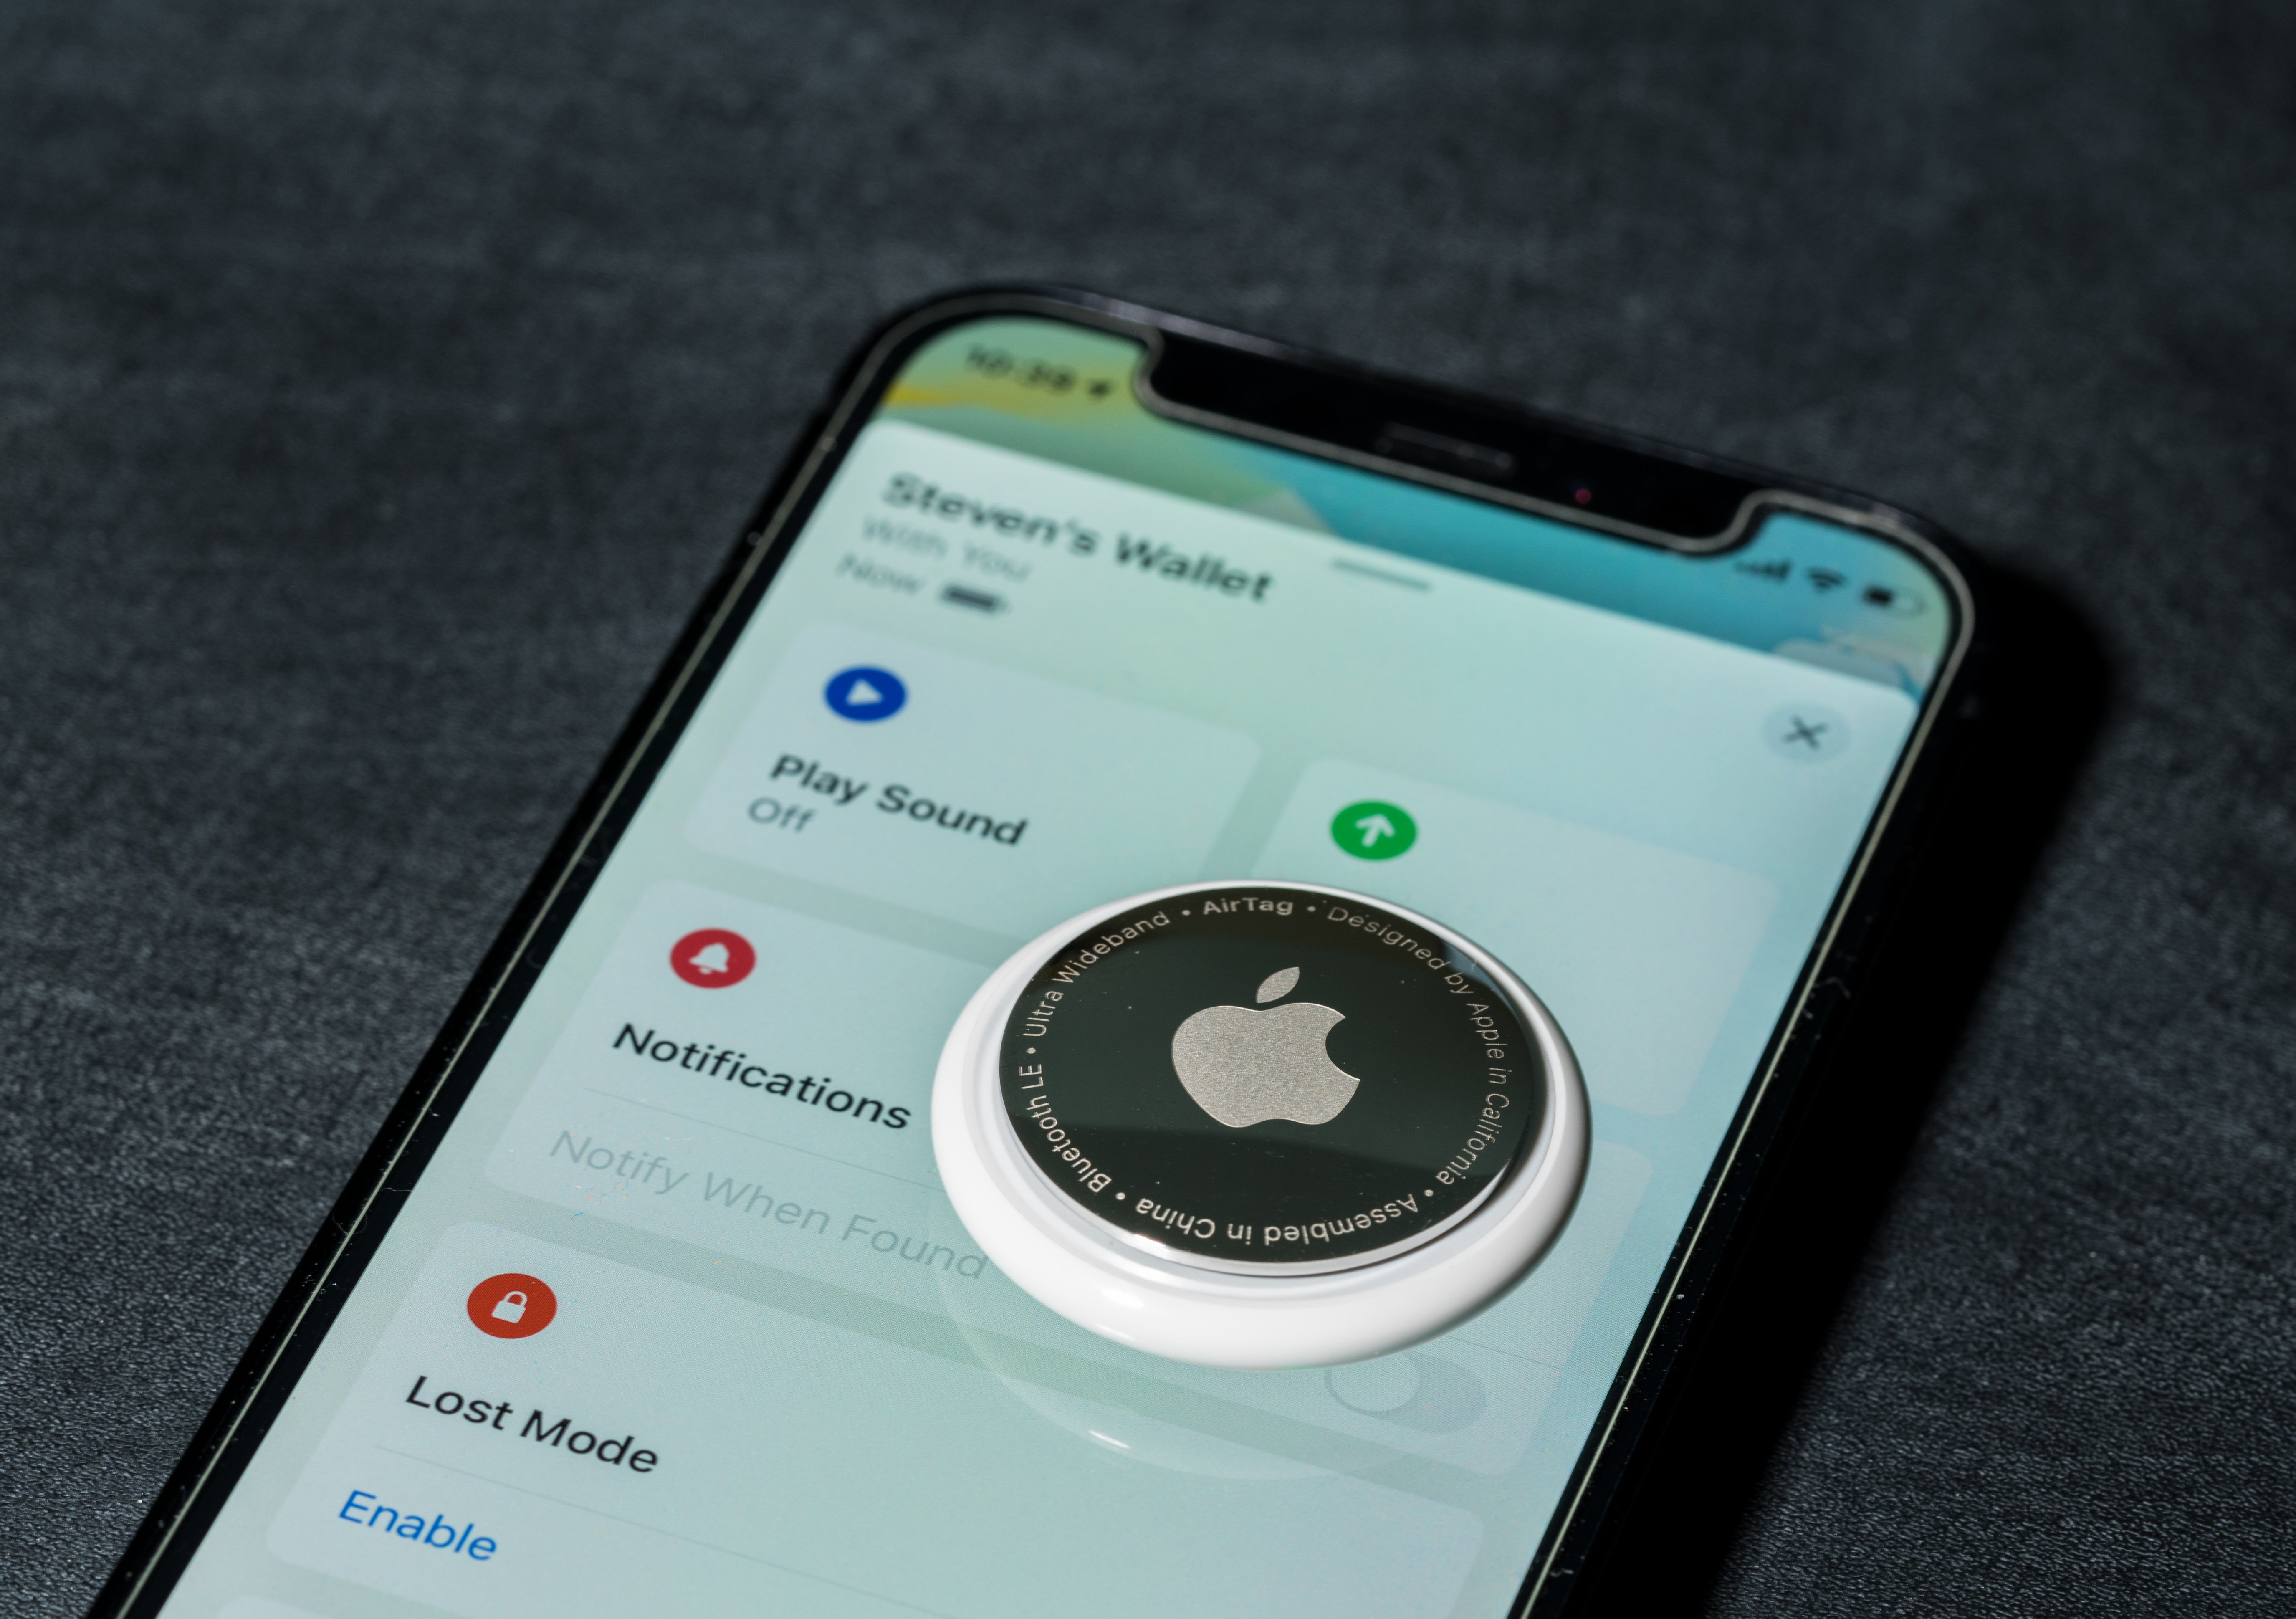 Apple's 'Find My' network locates iOS 15 devices even if they're off or erased   Engadget